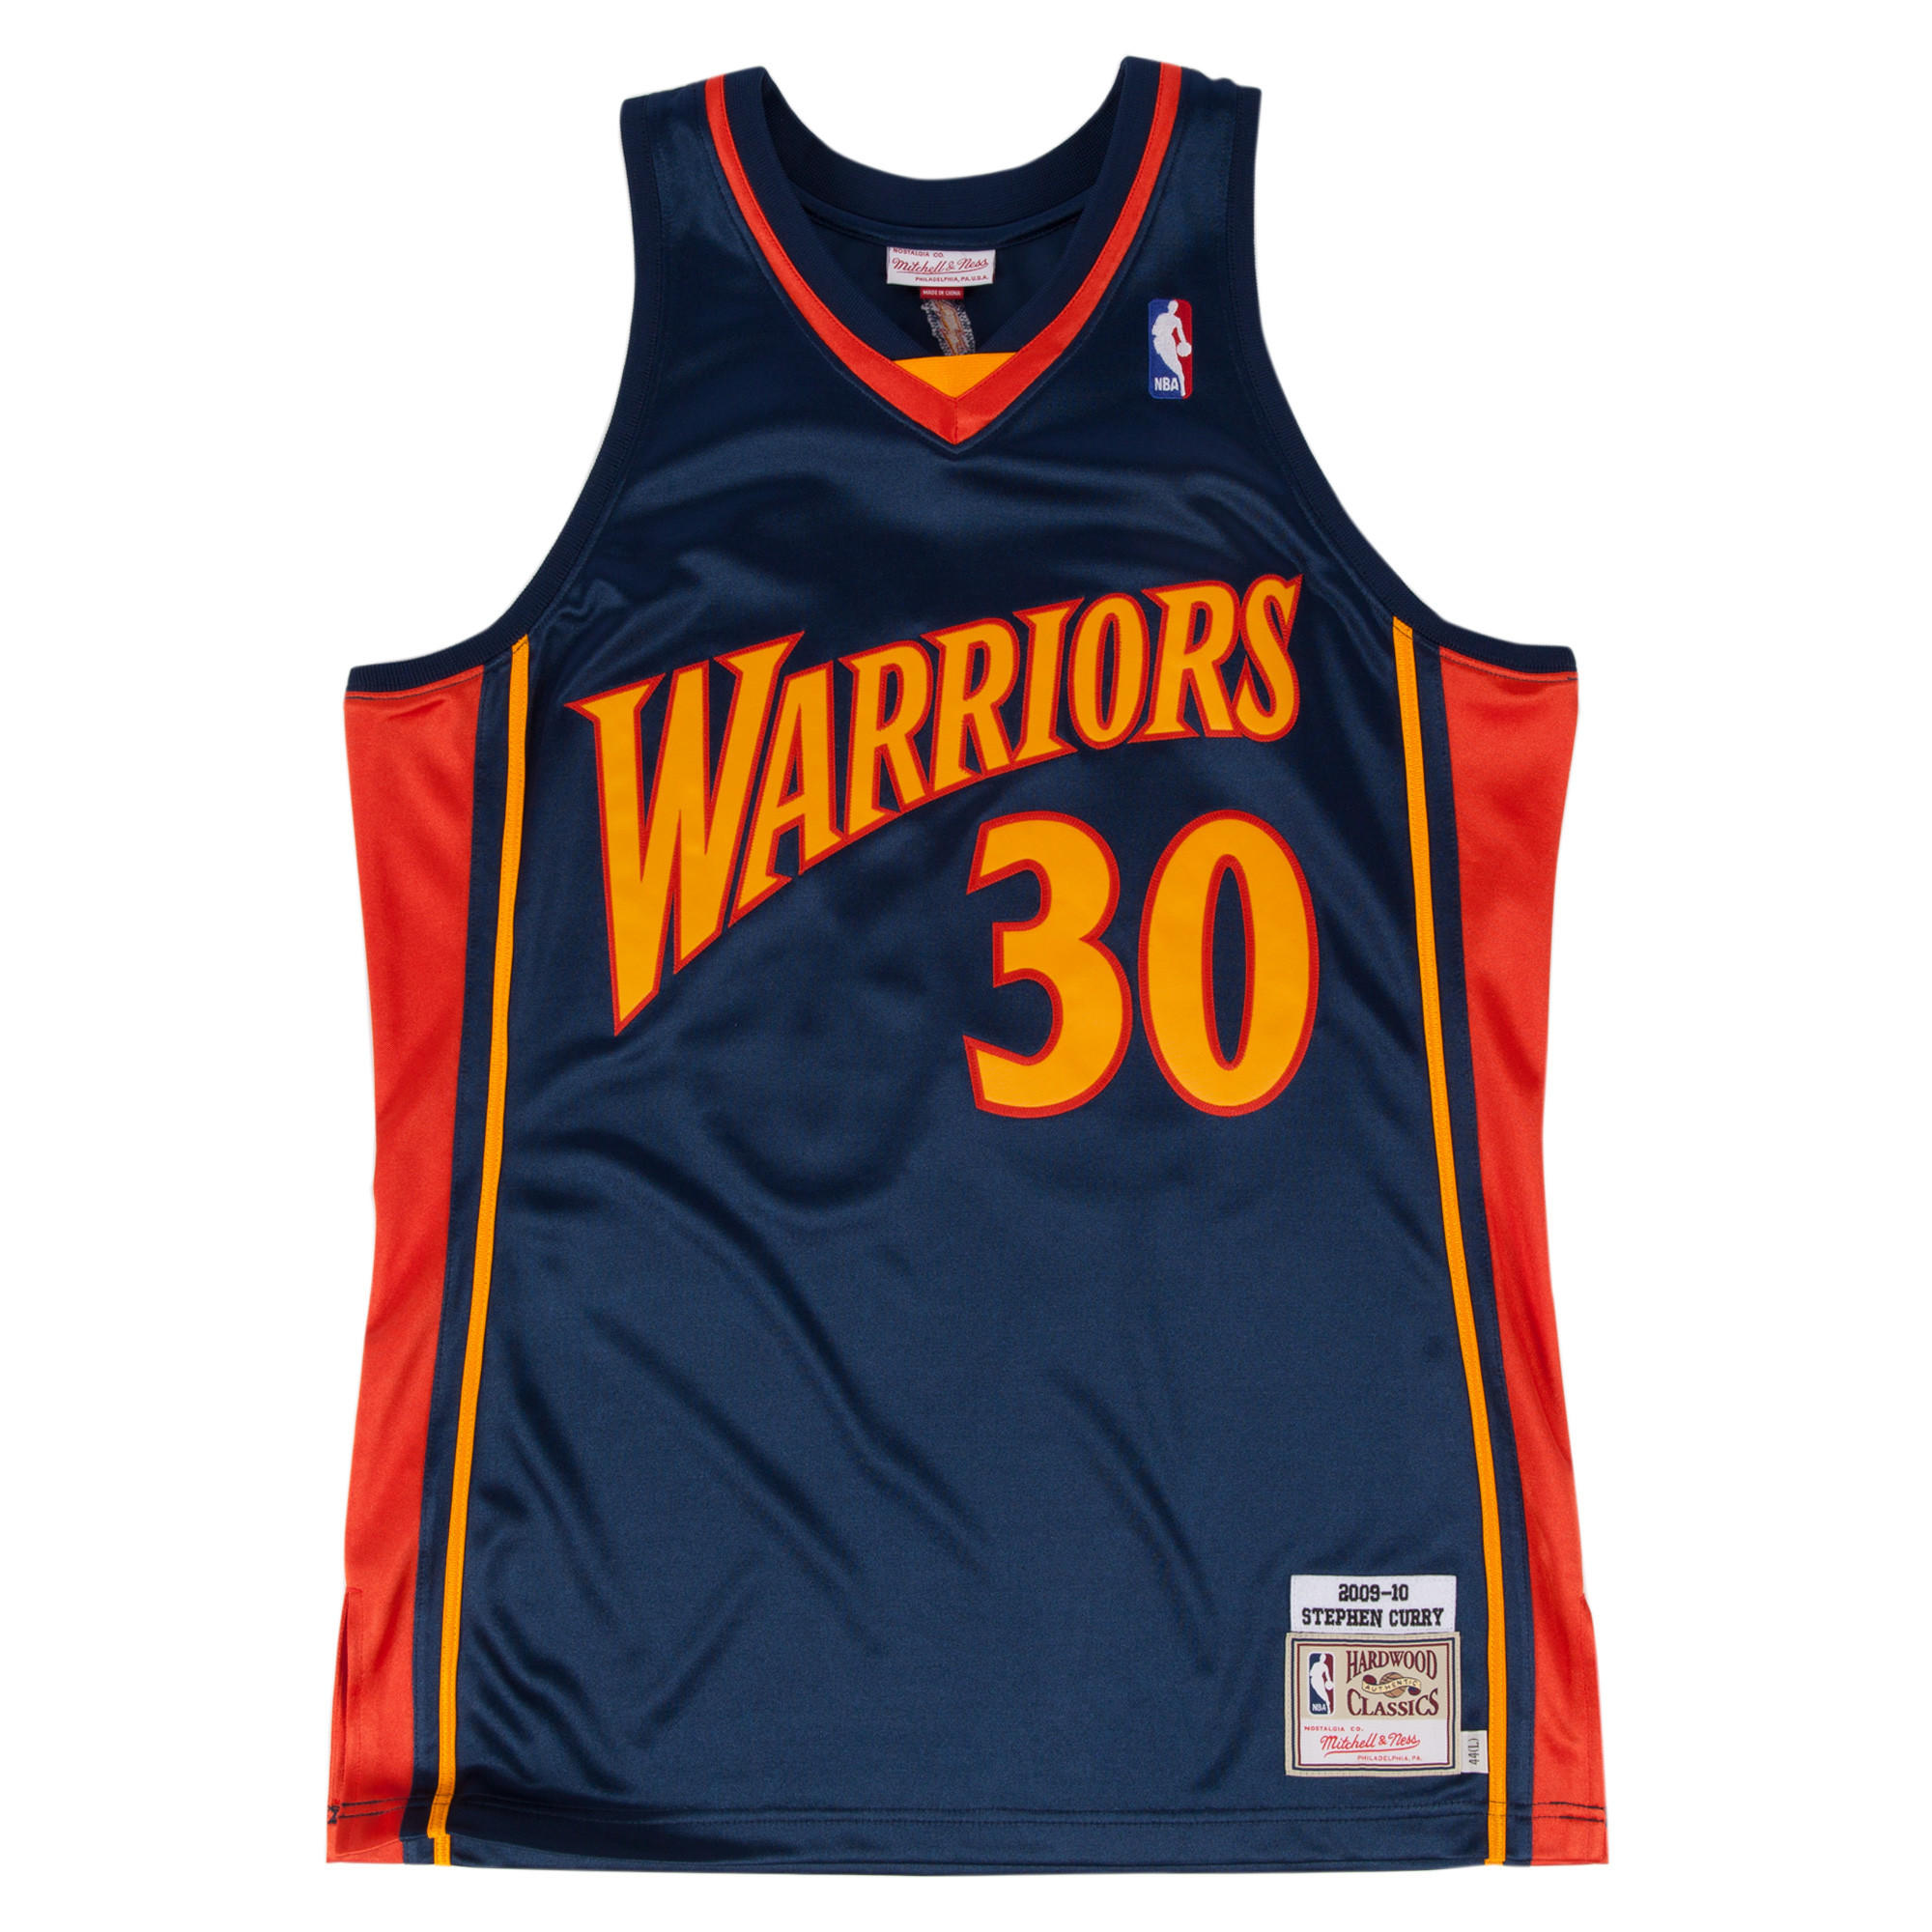 d061fcde317 Stephen Curry 2009-10 Authentic Jersey Golden State Warriors ...